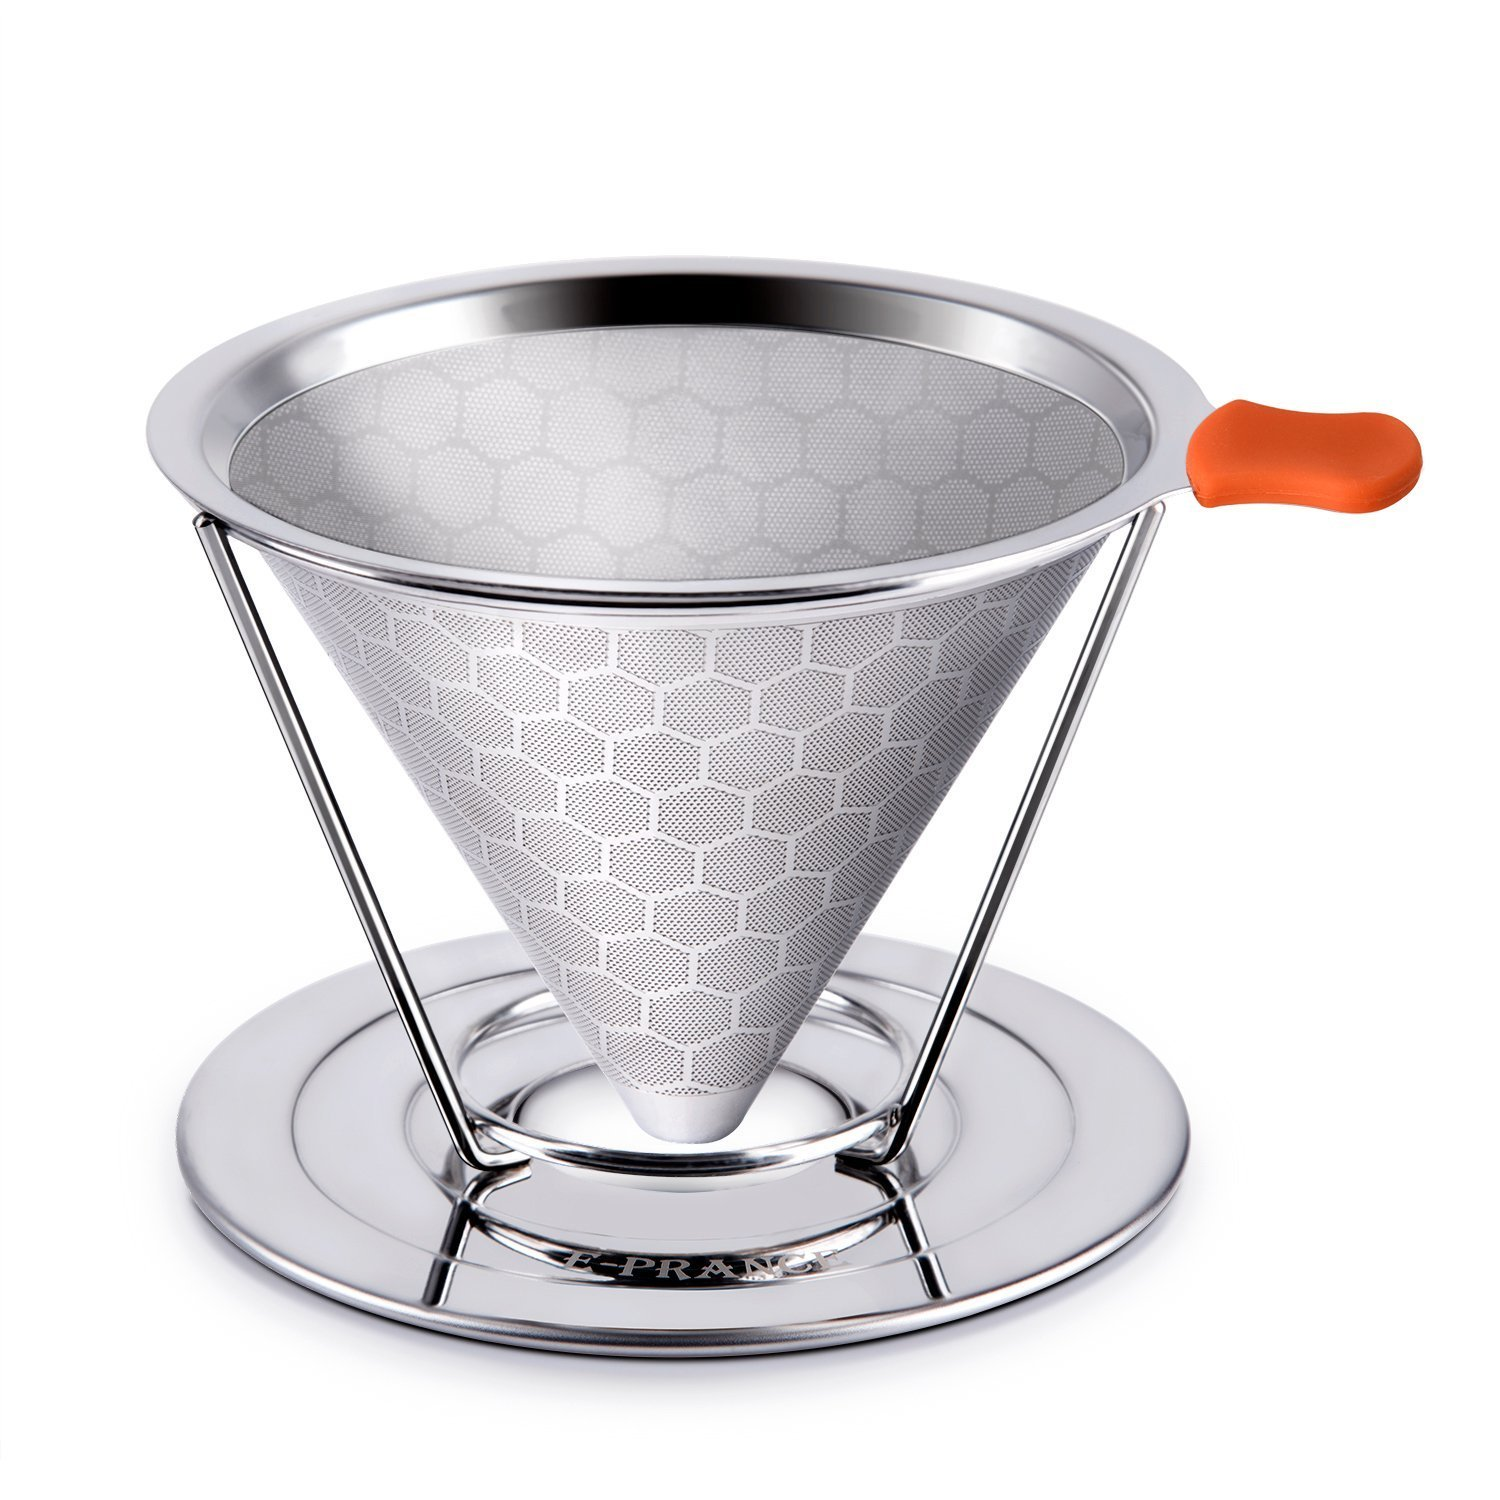 FJROnline Premium Stainless Steel Coffee Filter,Reusable Pour Over Coffee Filter Cone Coffee Dripper with Removable Cup Stand Honeycomb Design